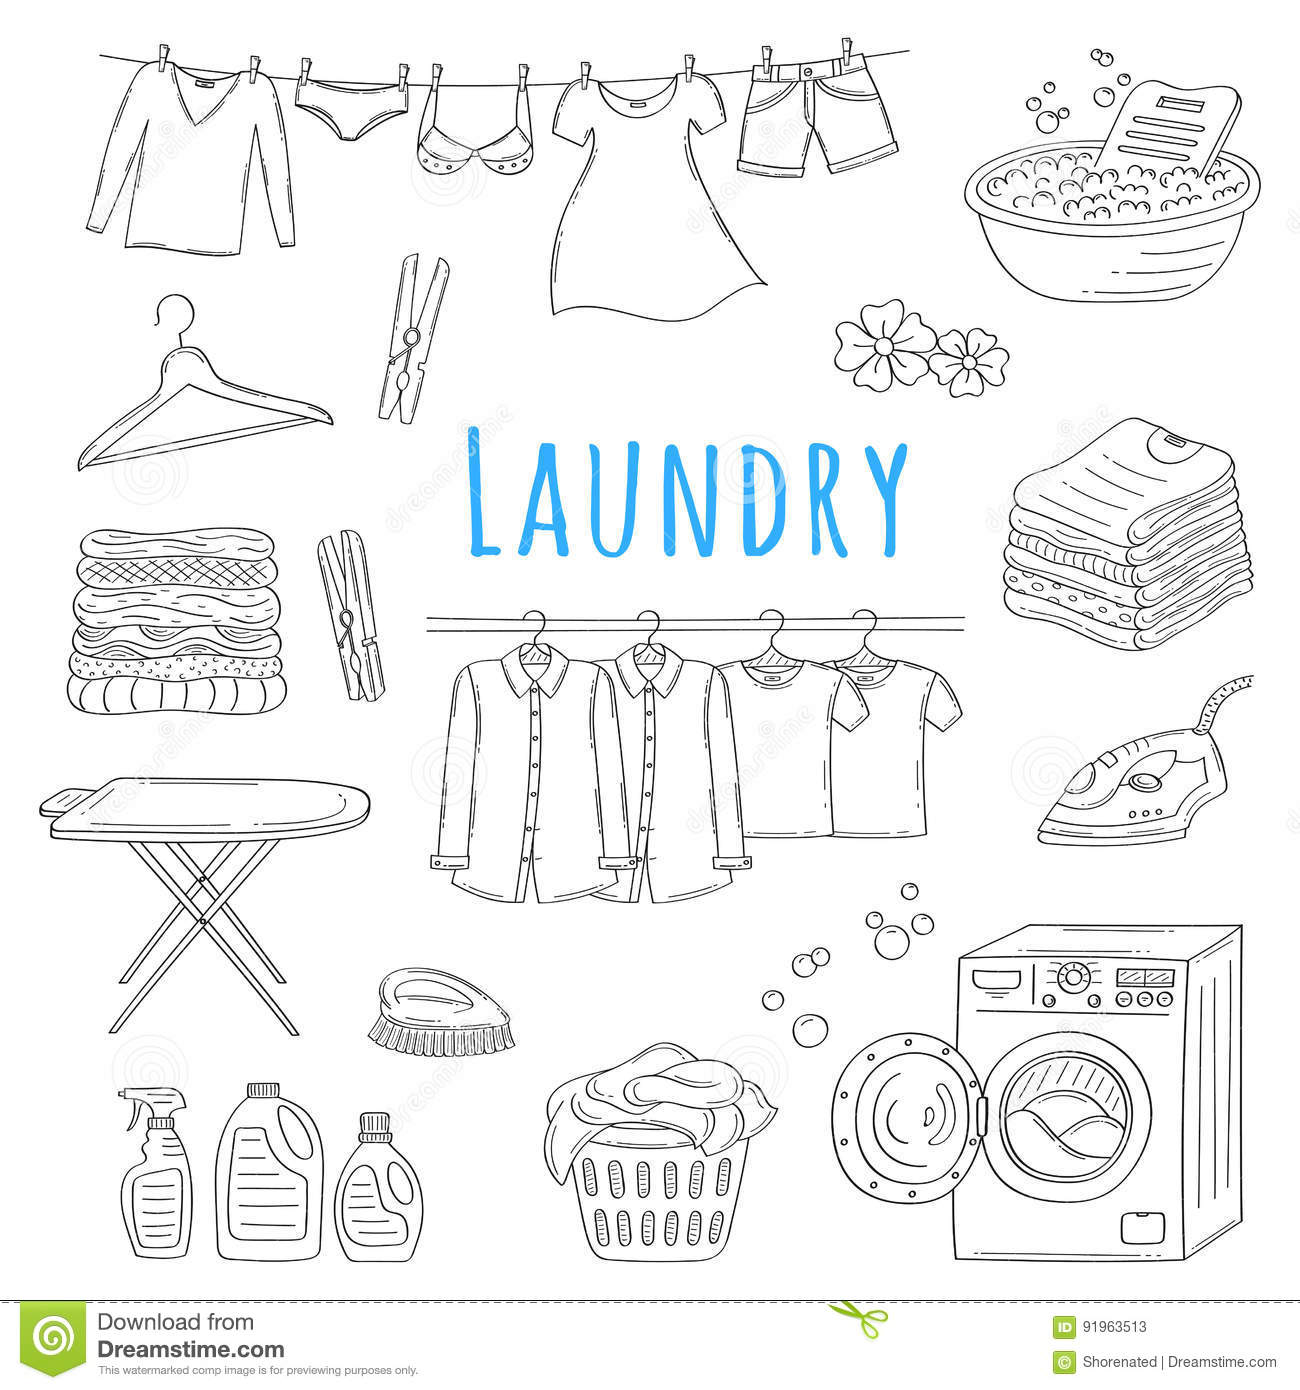 Laundry service hand drawn doodle icons set vector illustration laundry service hand drawn doodle icons set vector illustration biocorpaavc Image collections